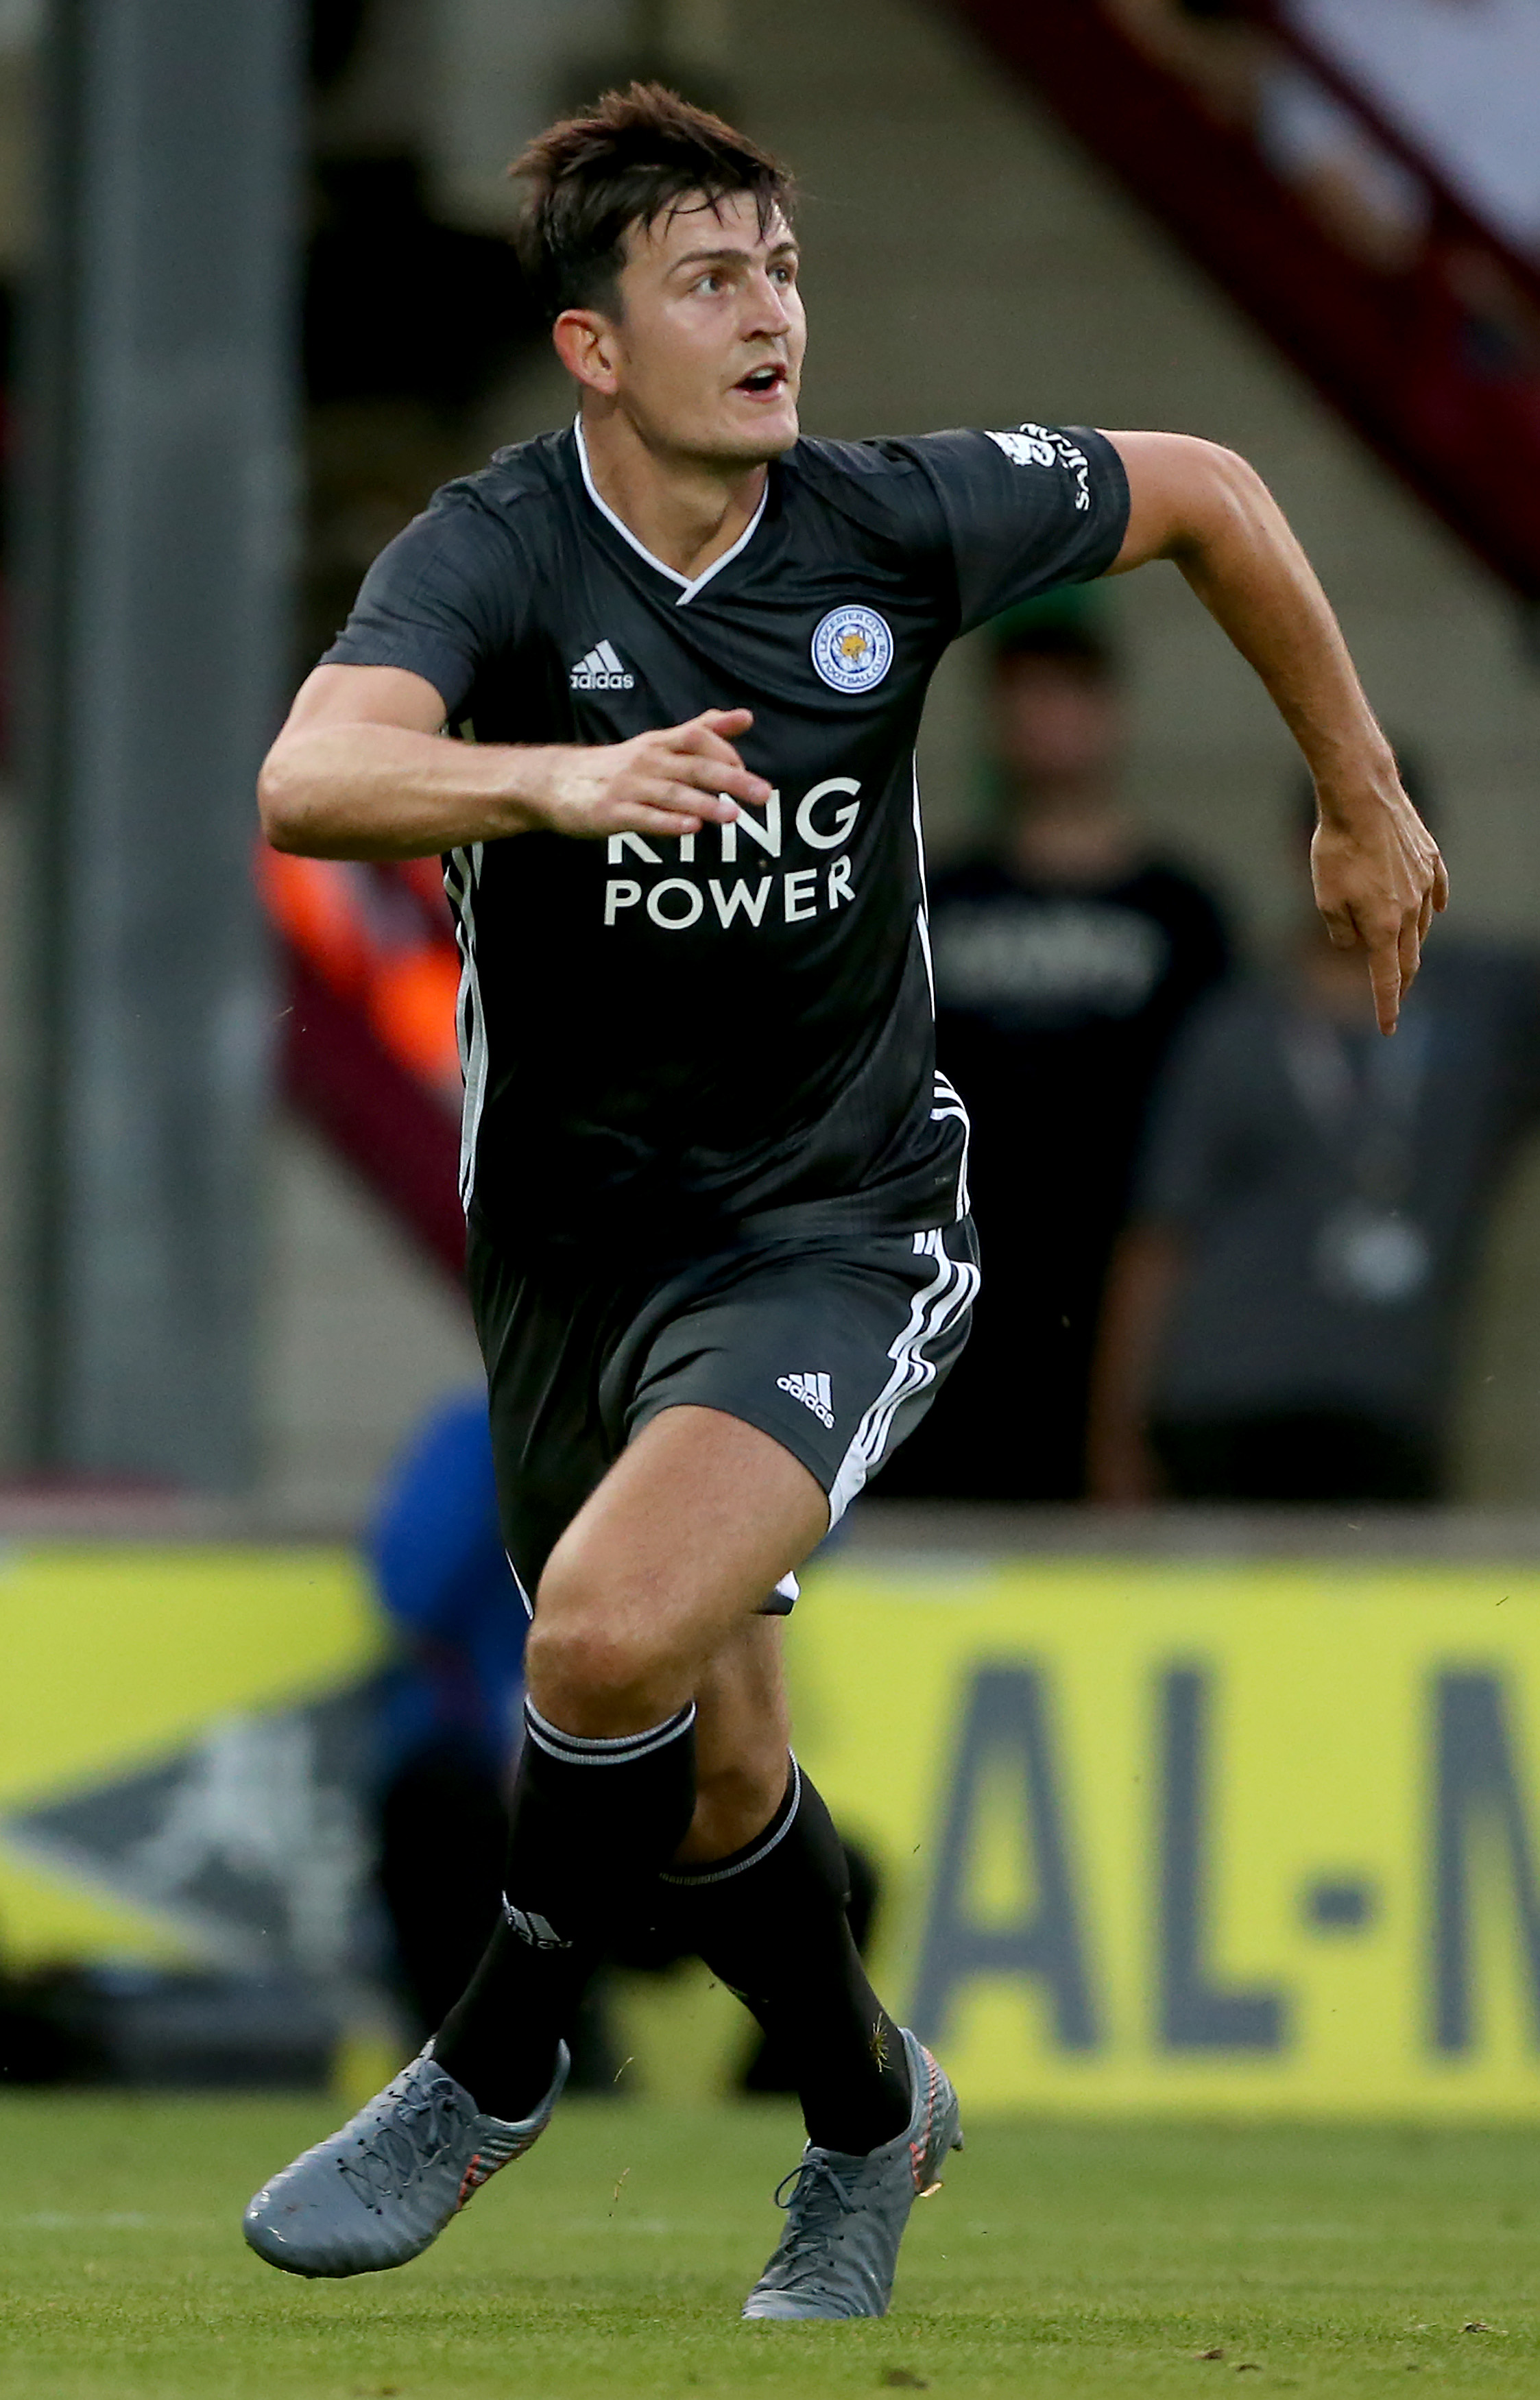 Leicester City want £90m for Maguire